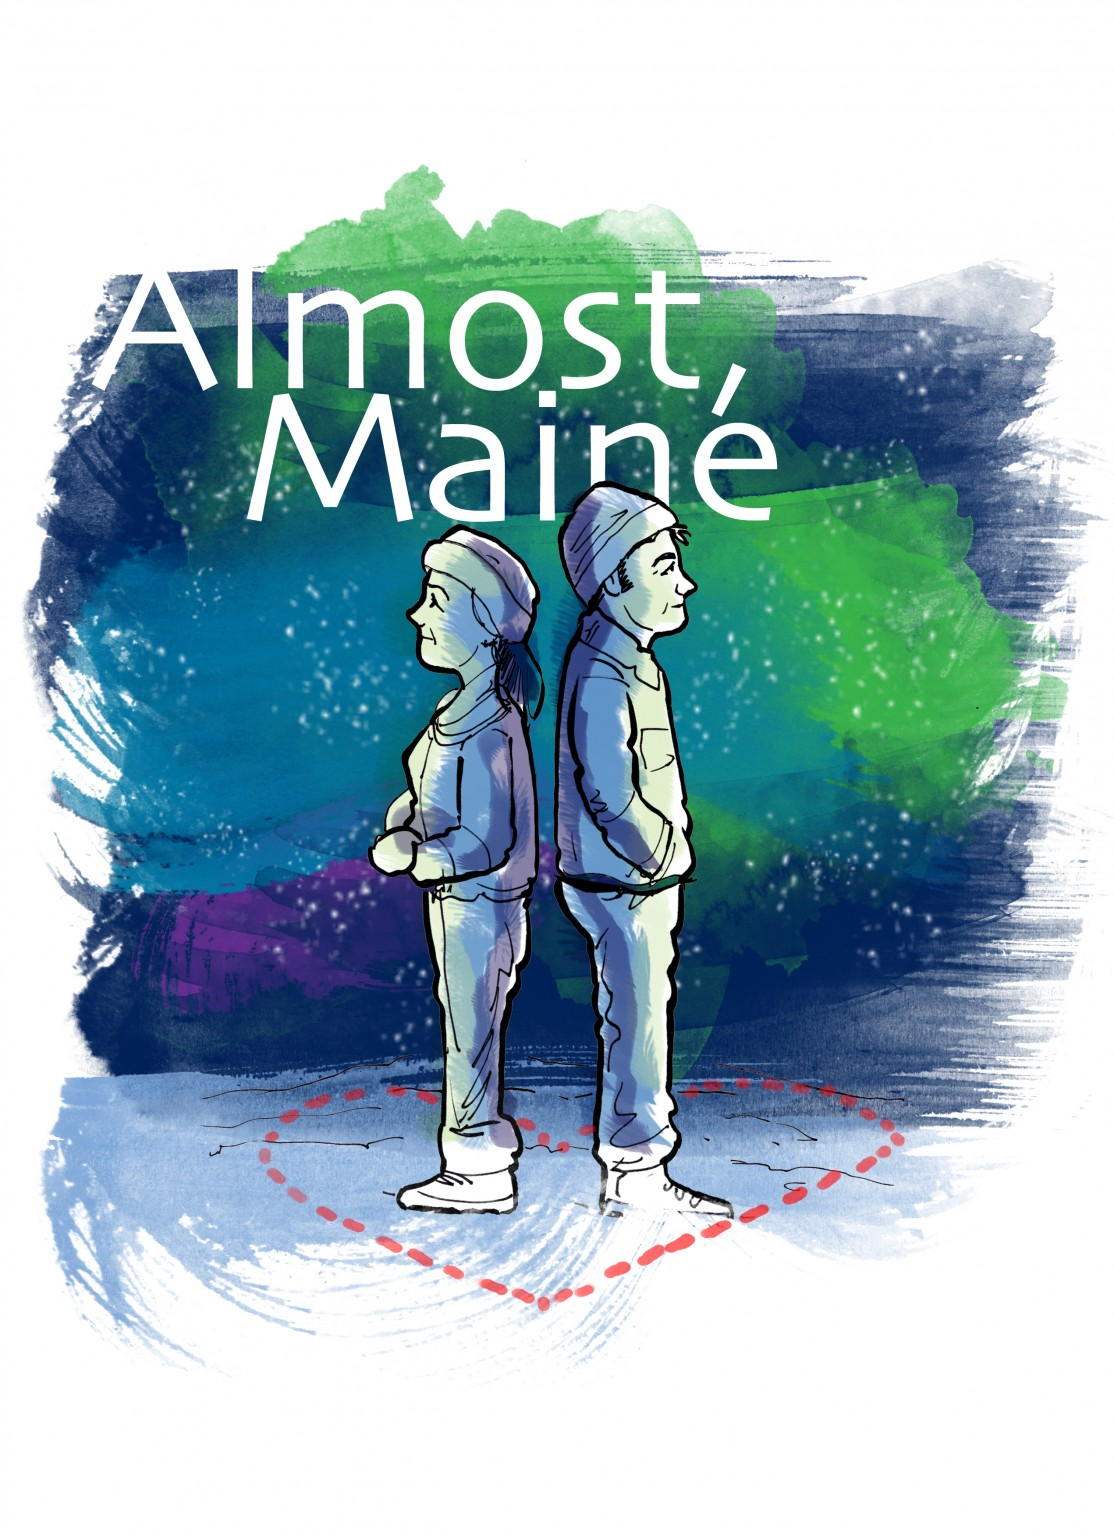 ALMOST-MAINE